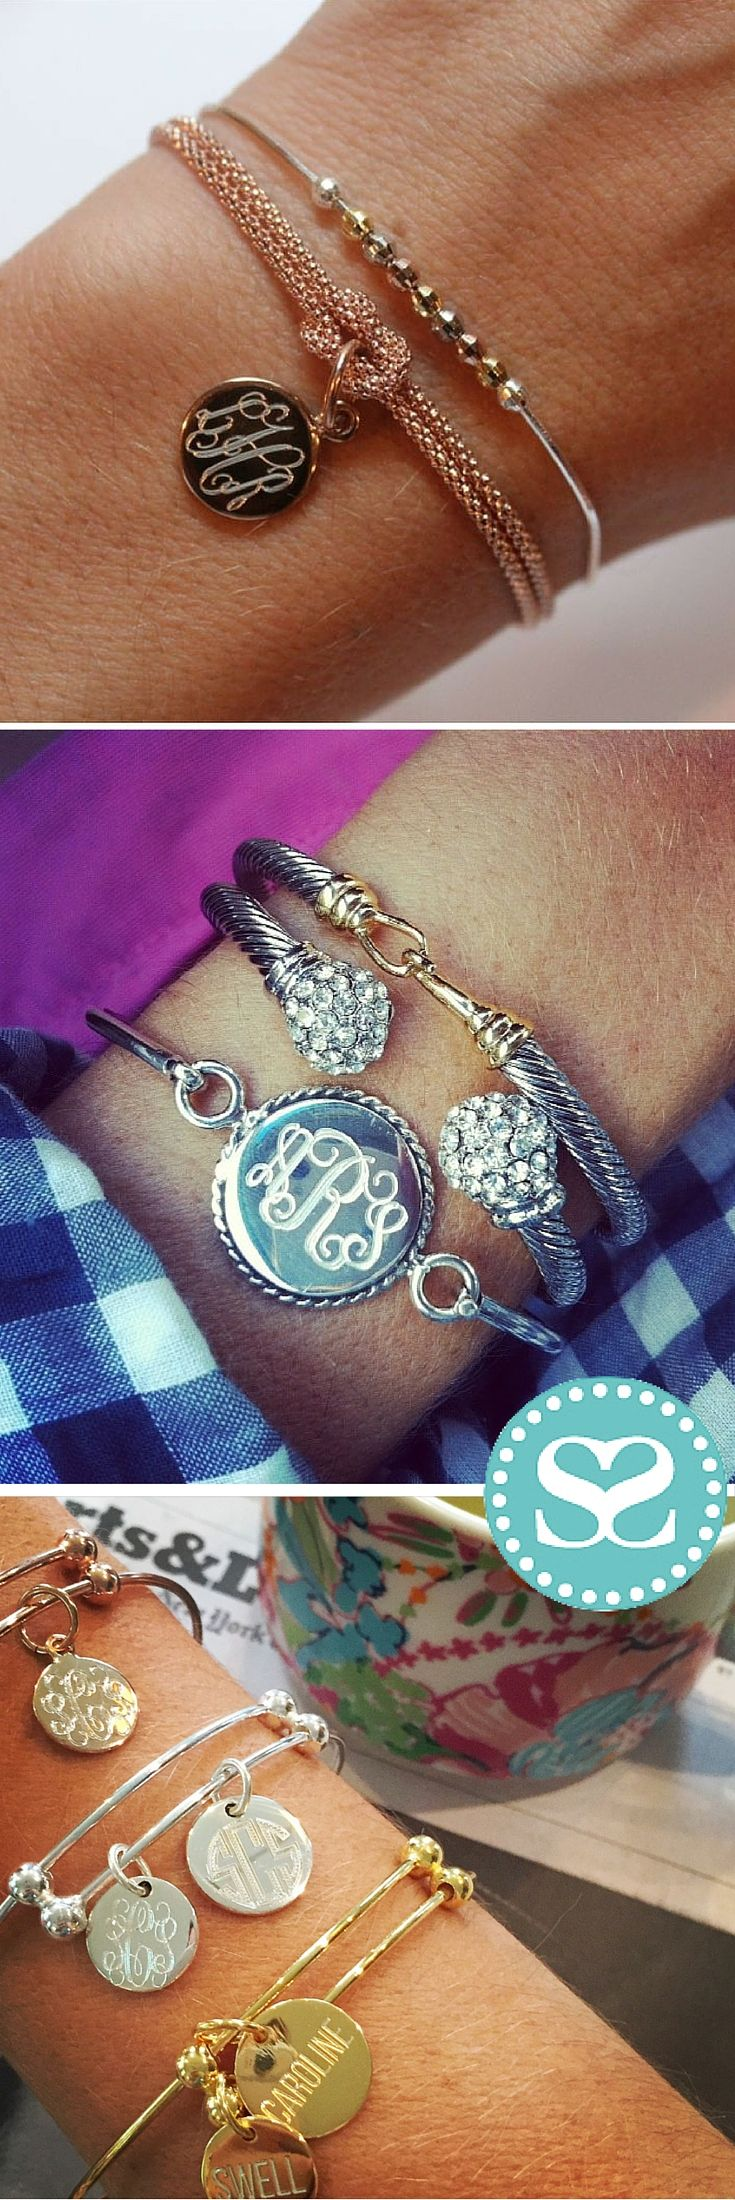 Engraved locally with love, #SwellCaroline bracelets make the sweetest gifts. By engraving the back side with a personal sentiment or date, you can create the most irresistible customized piece!